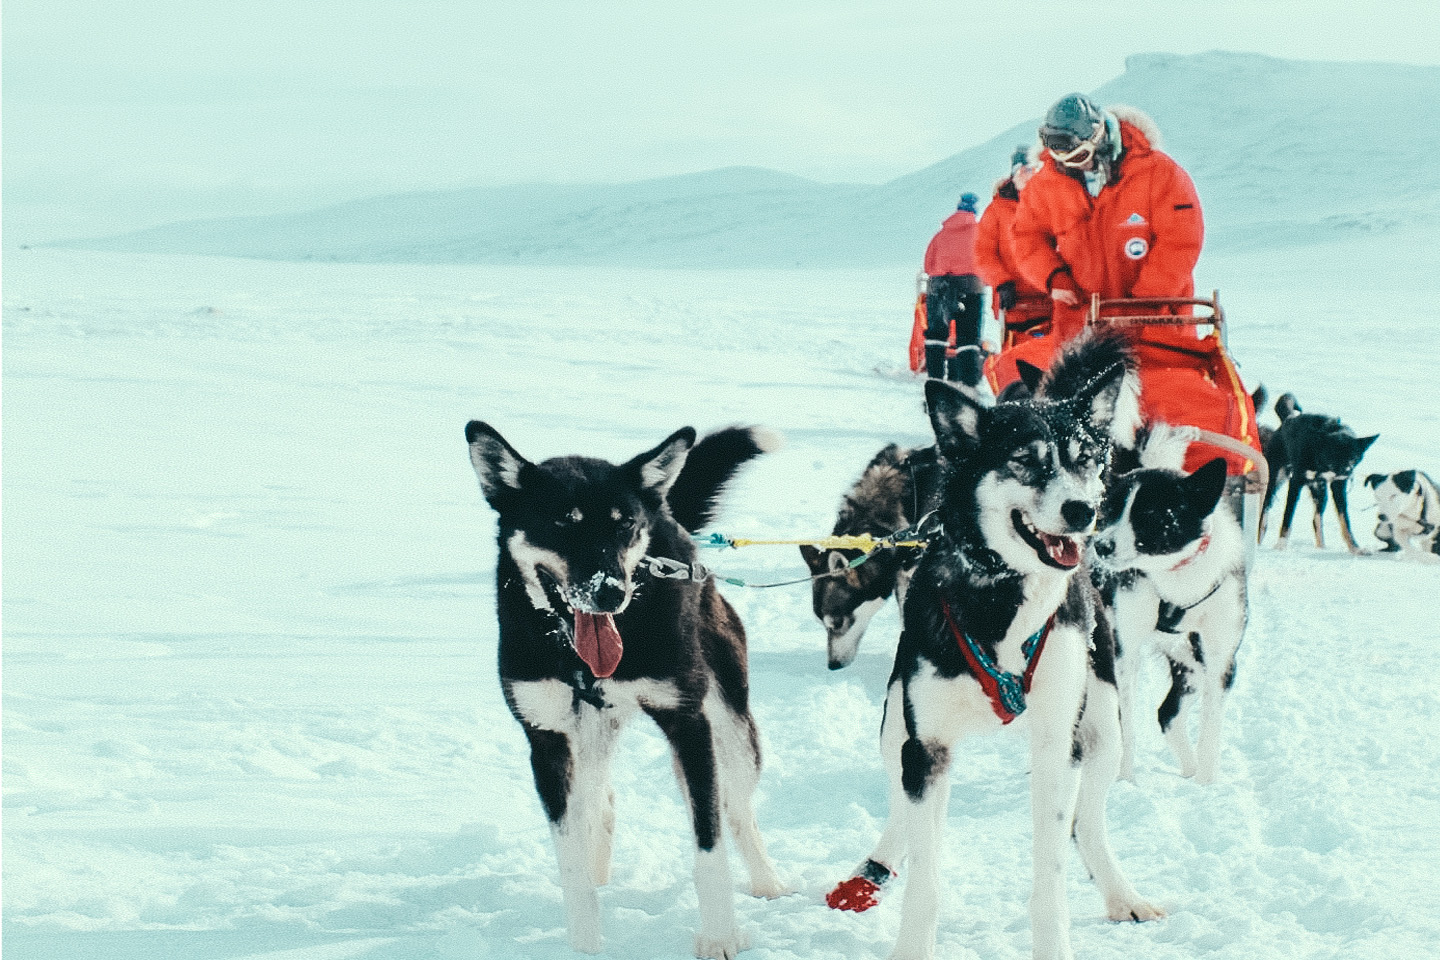 Dog sledding expedition in Norway